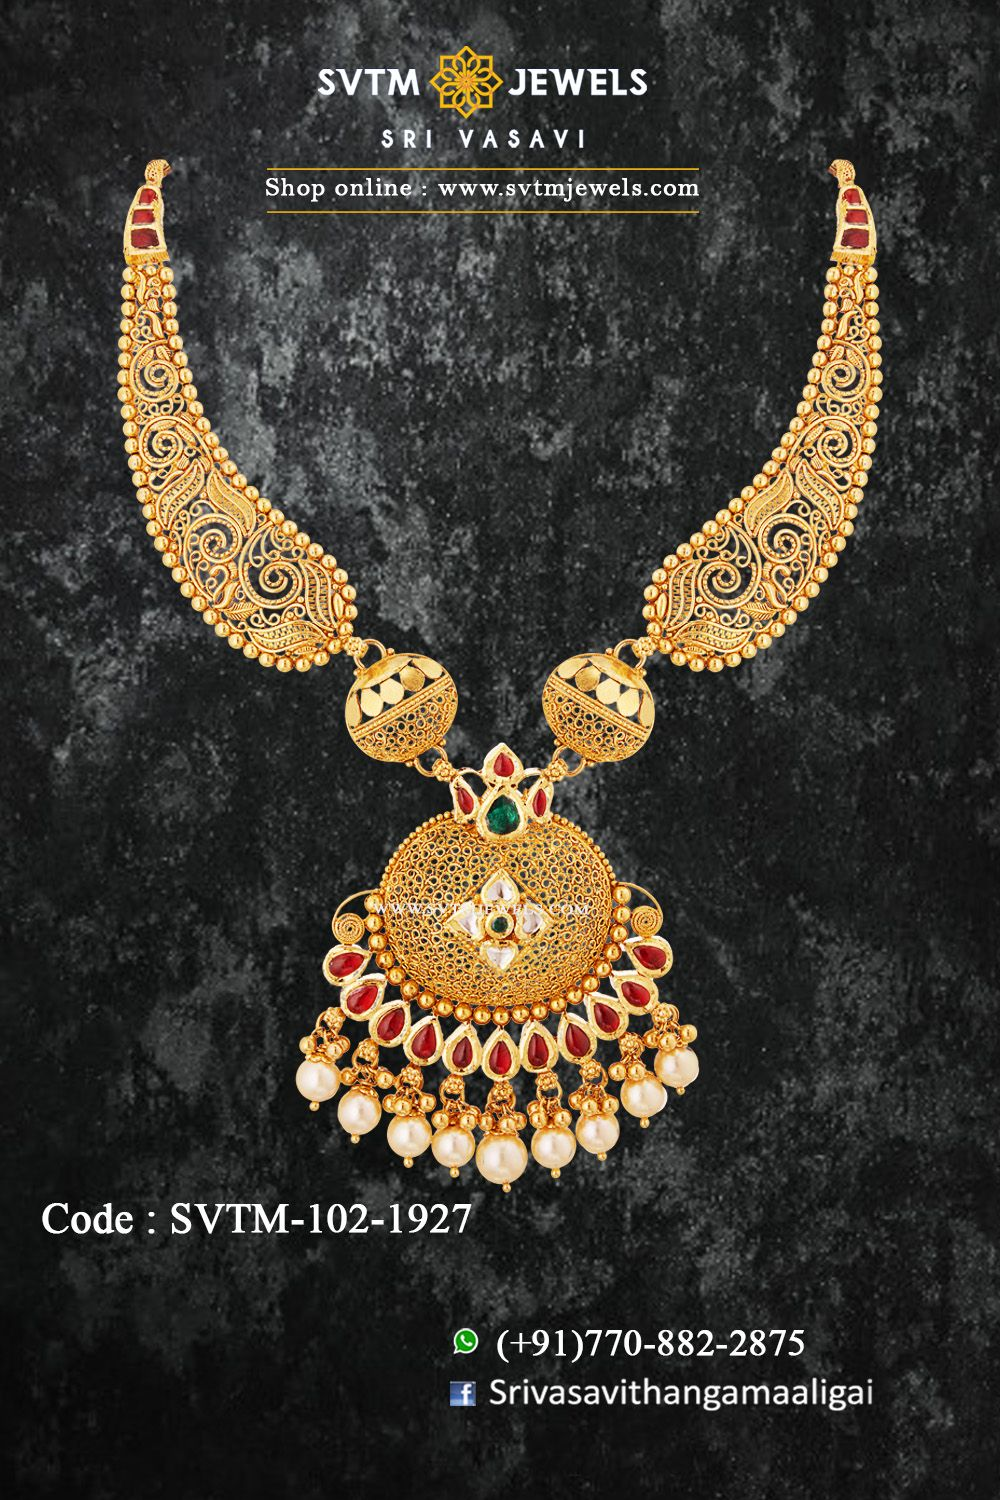 Wear this mesmerizing and exquisite 22kt yellow gold short